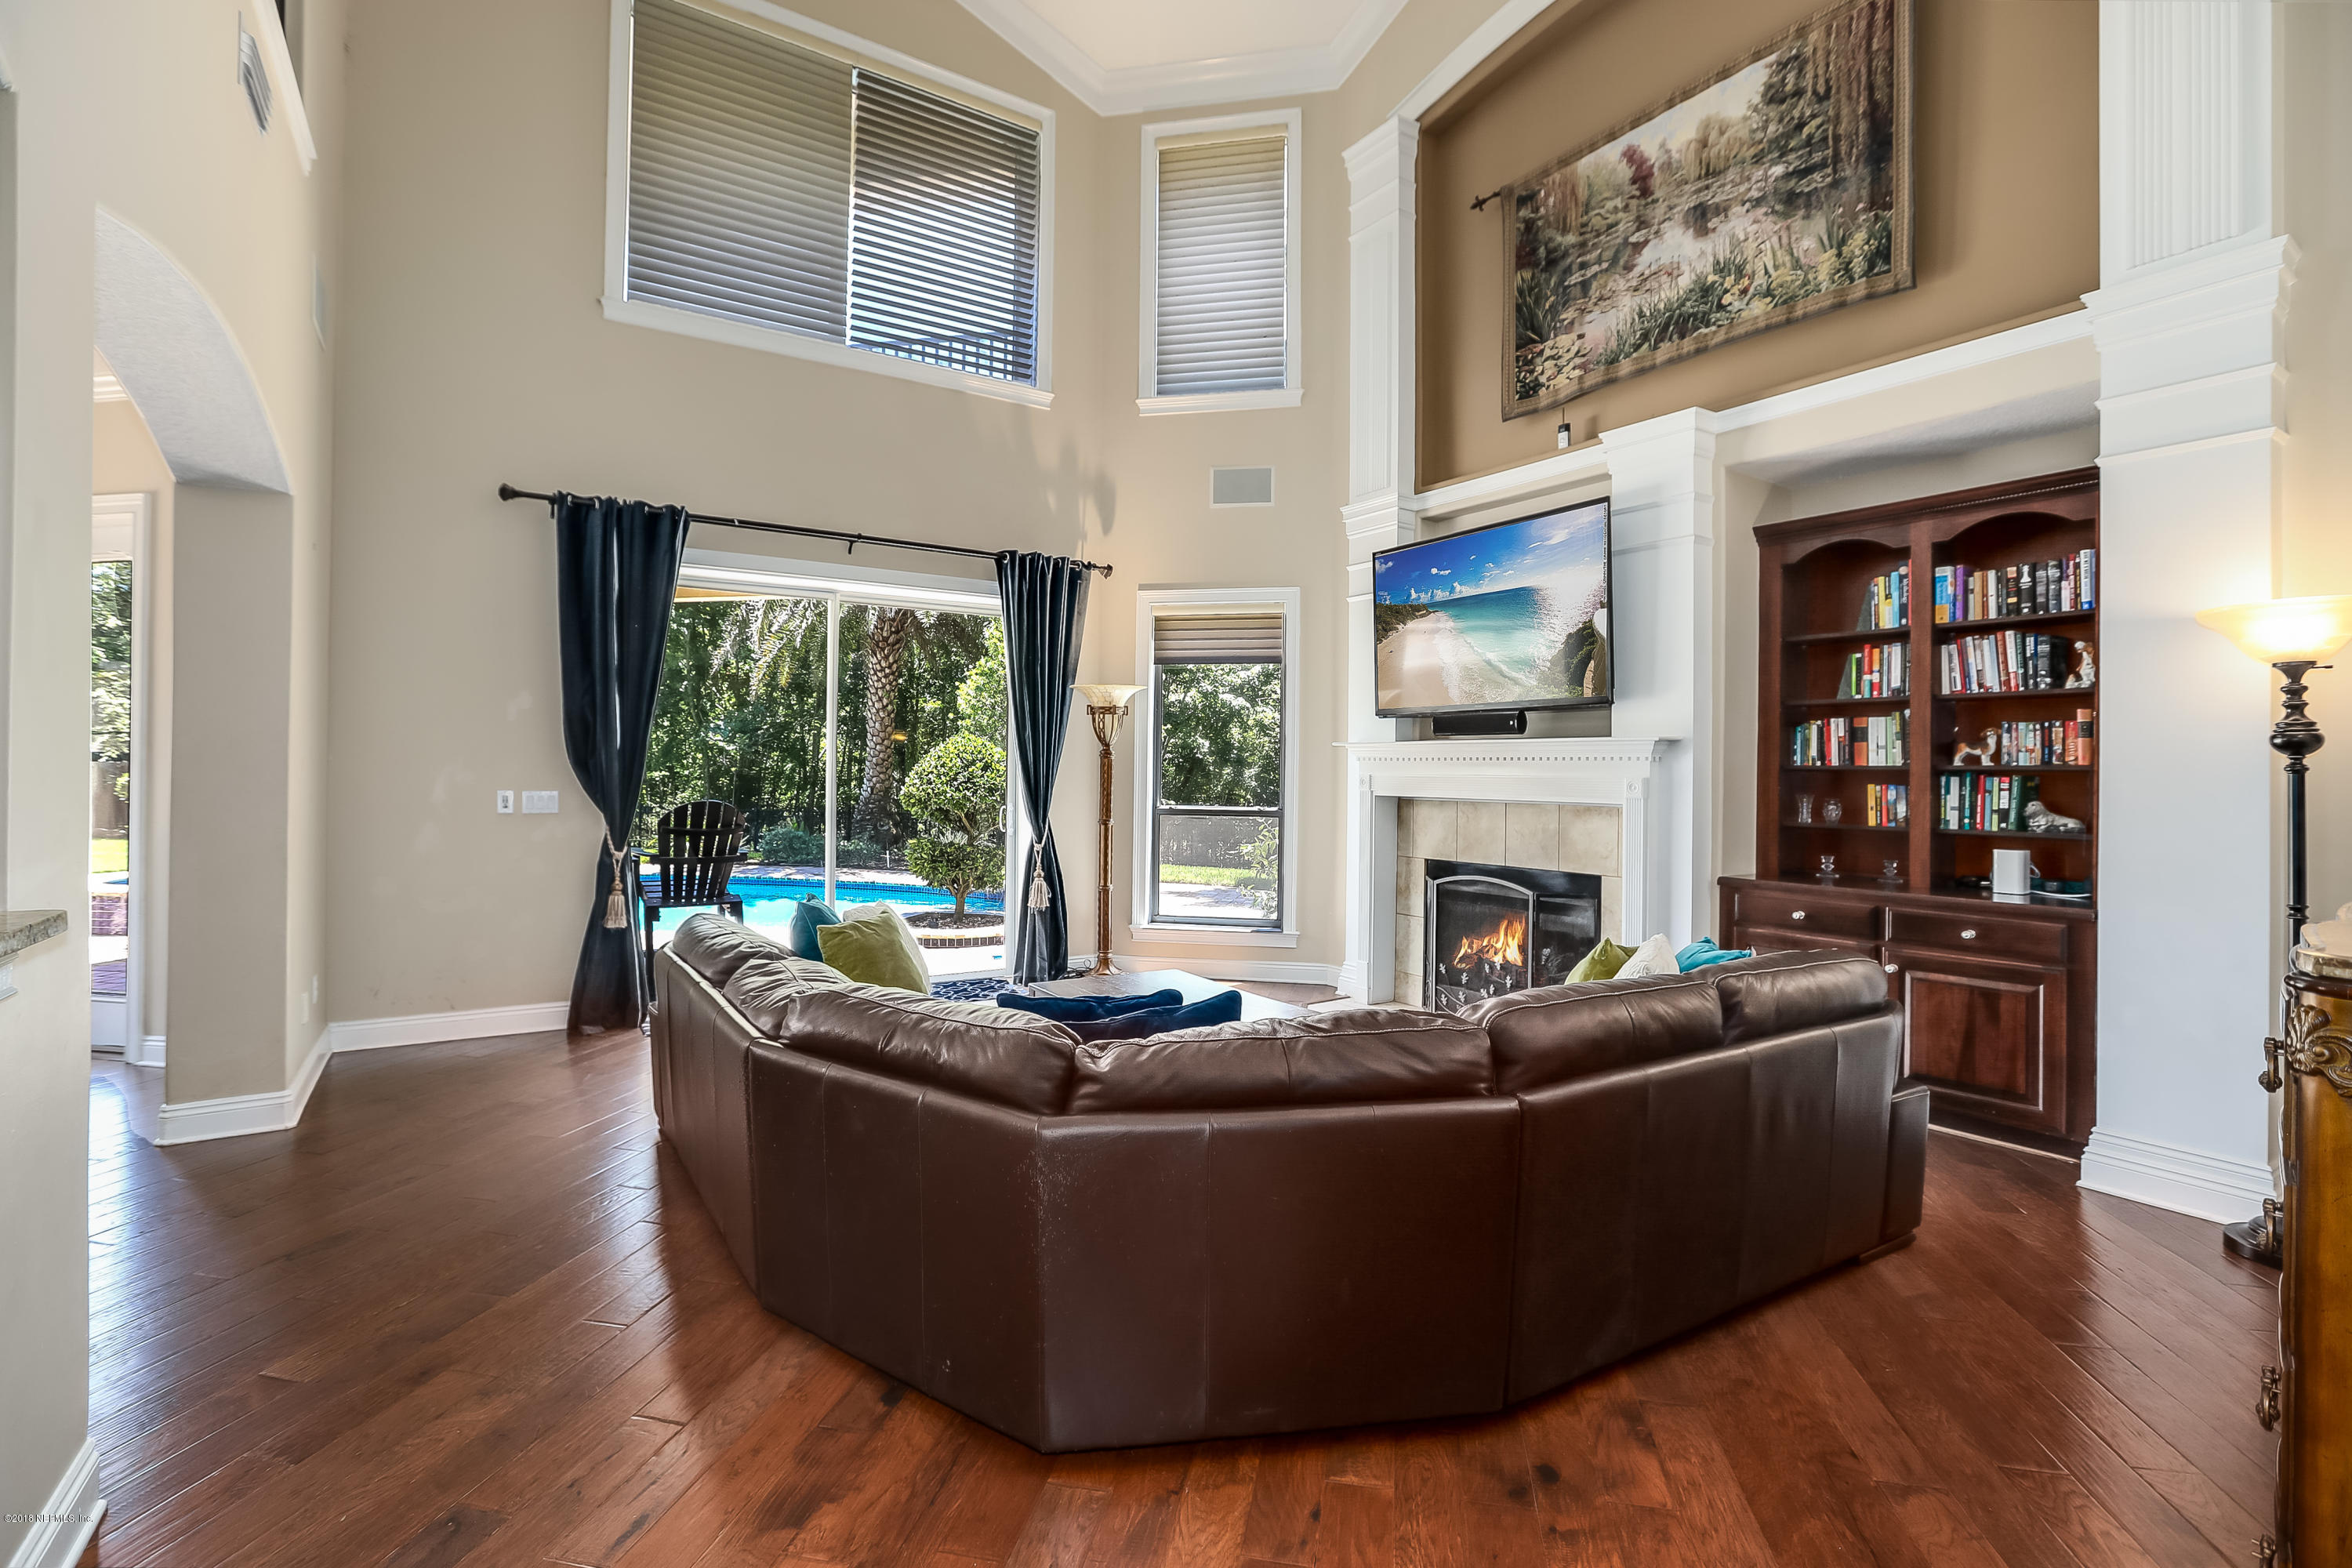 125 KING SAGO CT PONTE VEDRA BEACH - 10